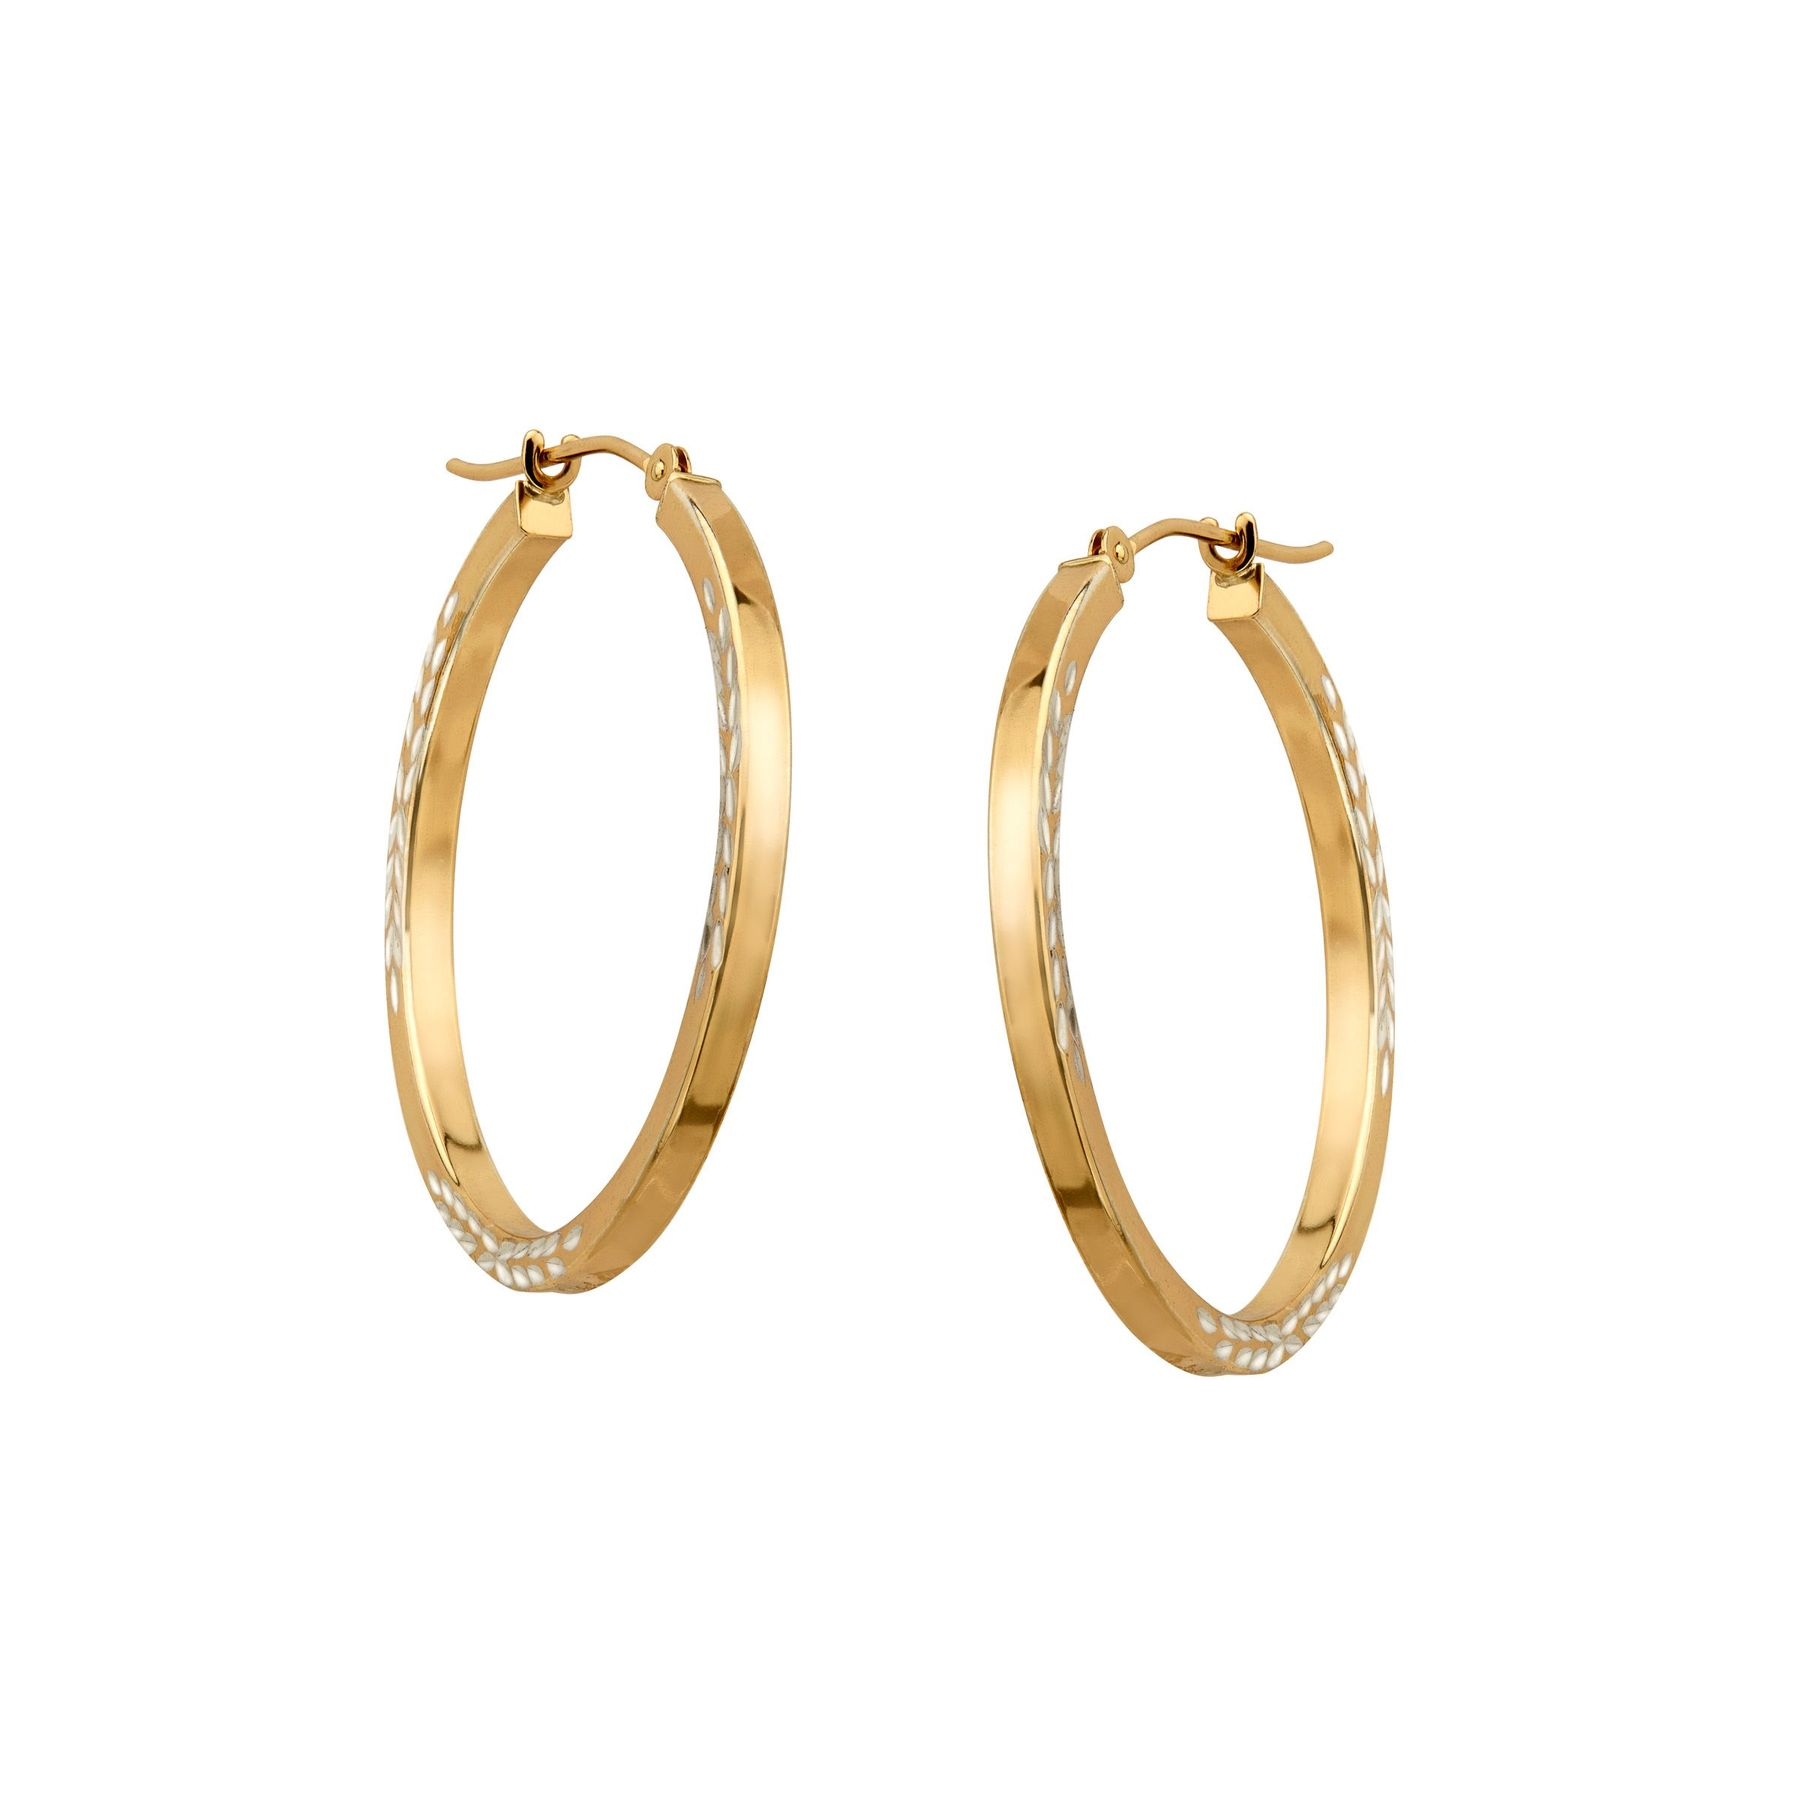 Leaf Design Hoop Earrings